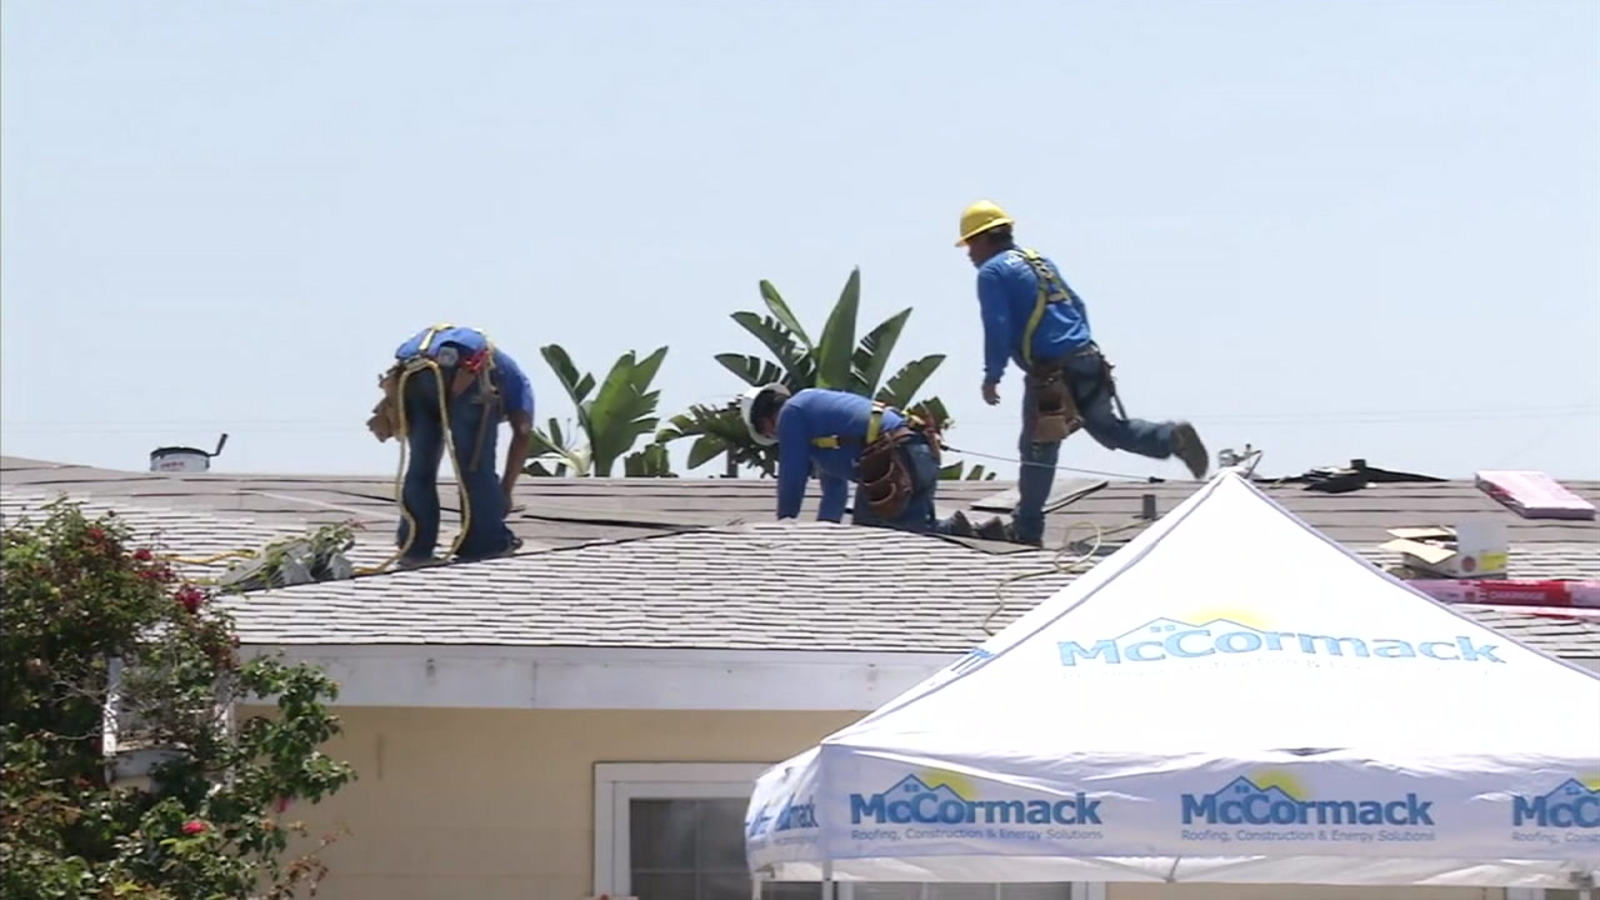 McCormack Roofing workers